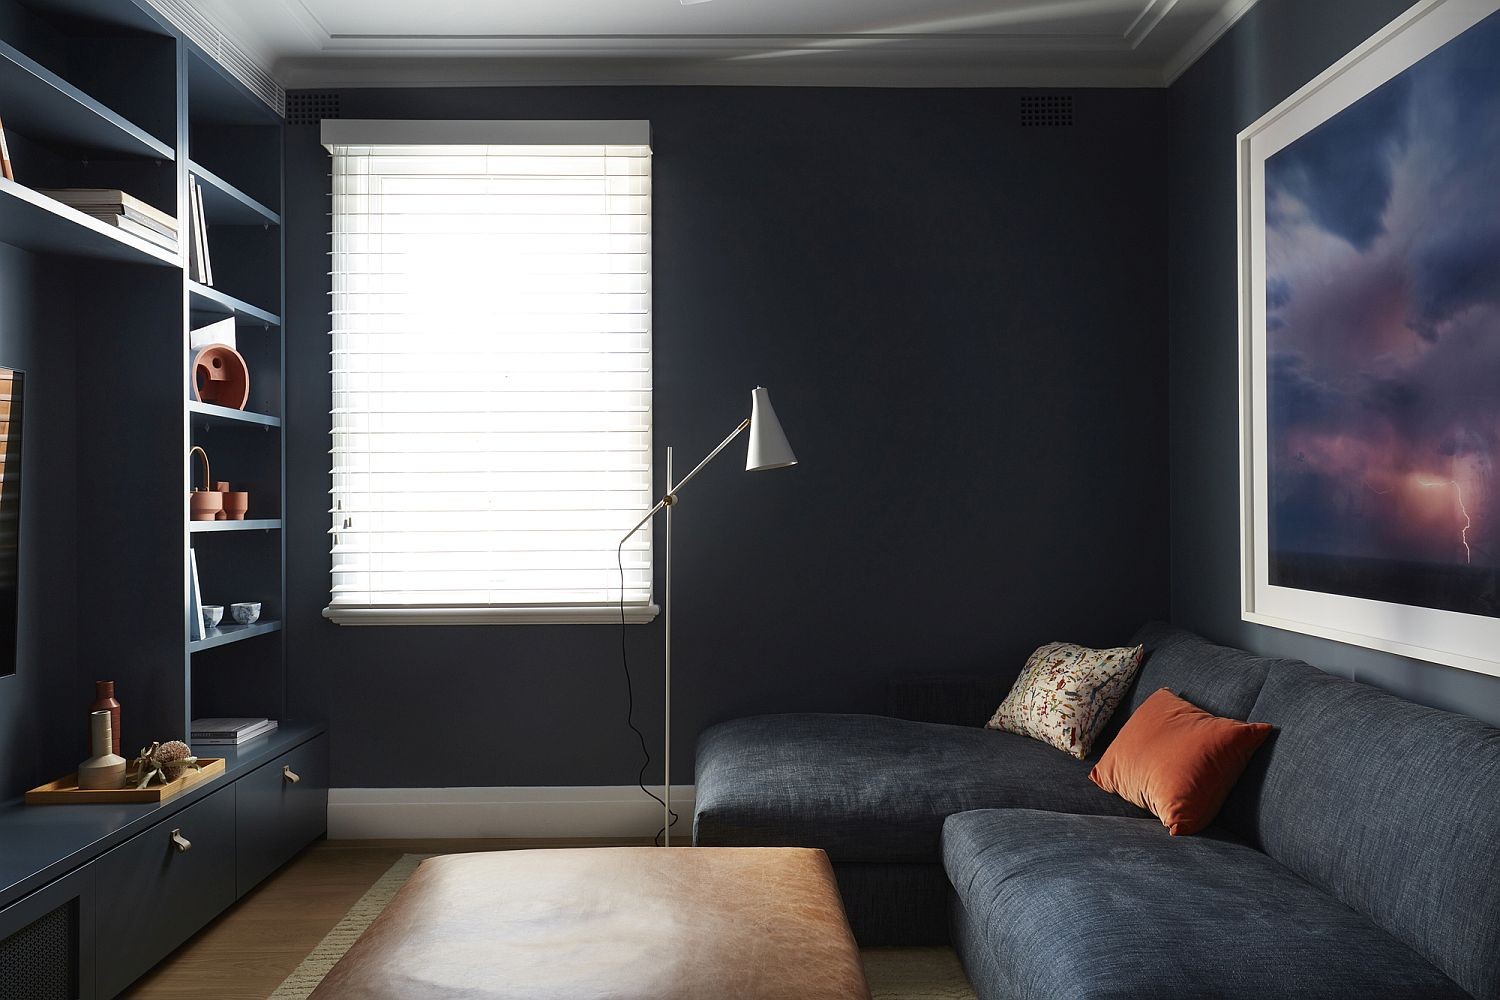 Dark gray rooom with TV and ample shelving